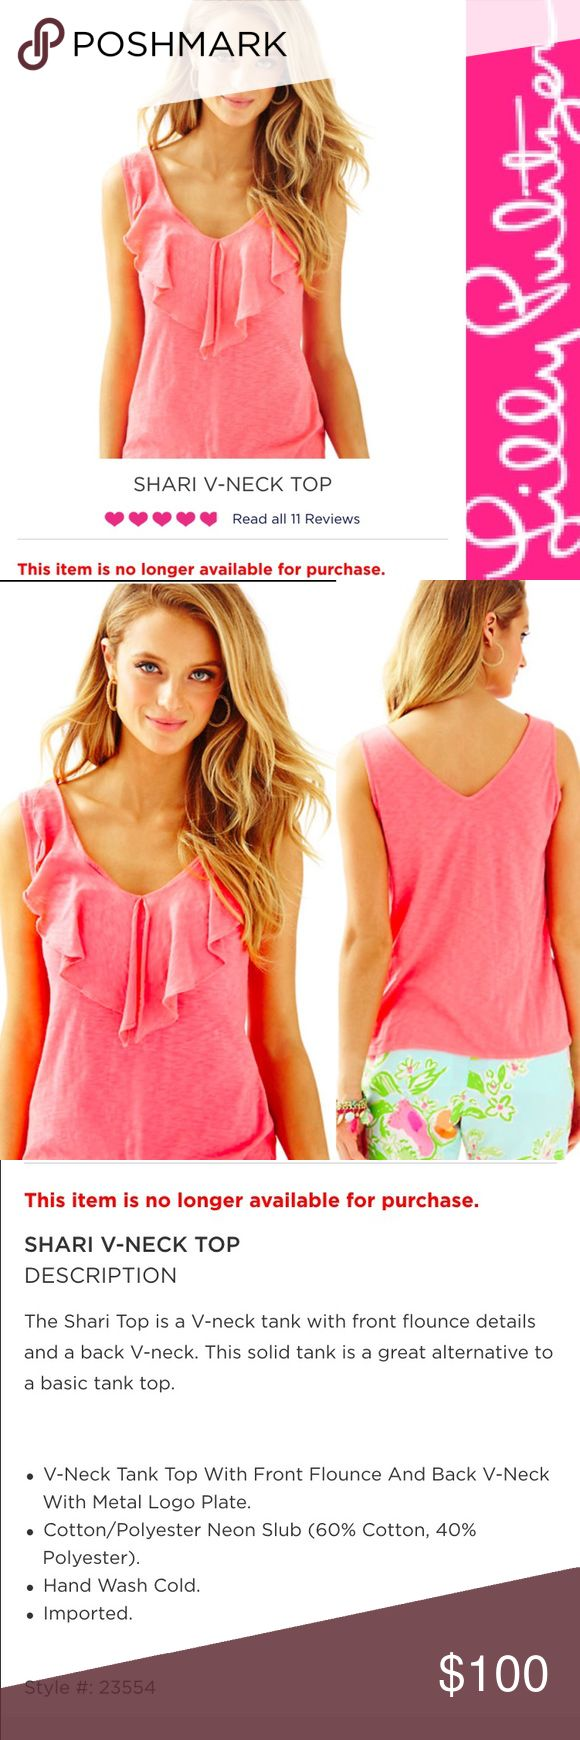 XL NWT Lilly Pulitzer Shari Top - Hot Coral XL Lilly Pulitzer Shari Top - Hot Coral. OUT OF STOCK item! Gorgeous top!!! BNWT in original packaging. Model image and item description courtesy of Lilly website, actual item shown. NO TRADES, PRICE FIRM, NO discussion of price in comments (sold out item - no offers, price is firm). Thanks for shopping my closet! 💞 Note: Not eligible for bundle discount Lilly Pulitzer Tops